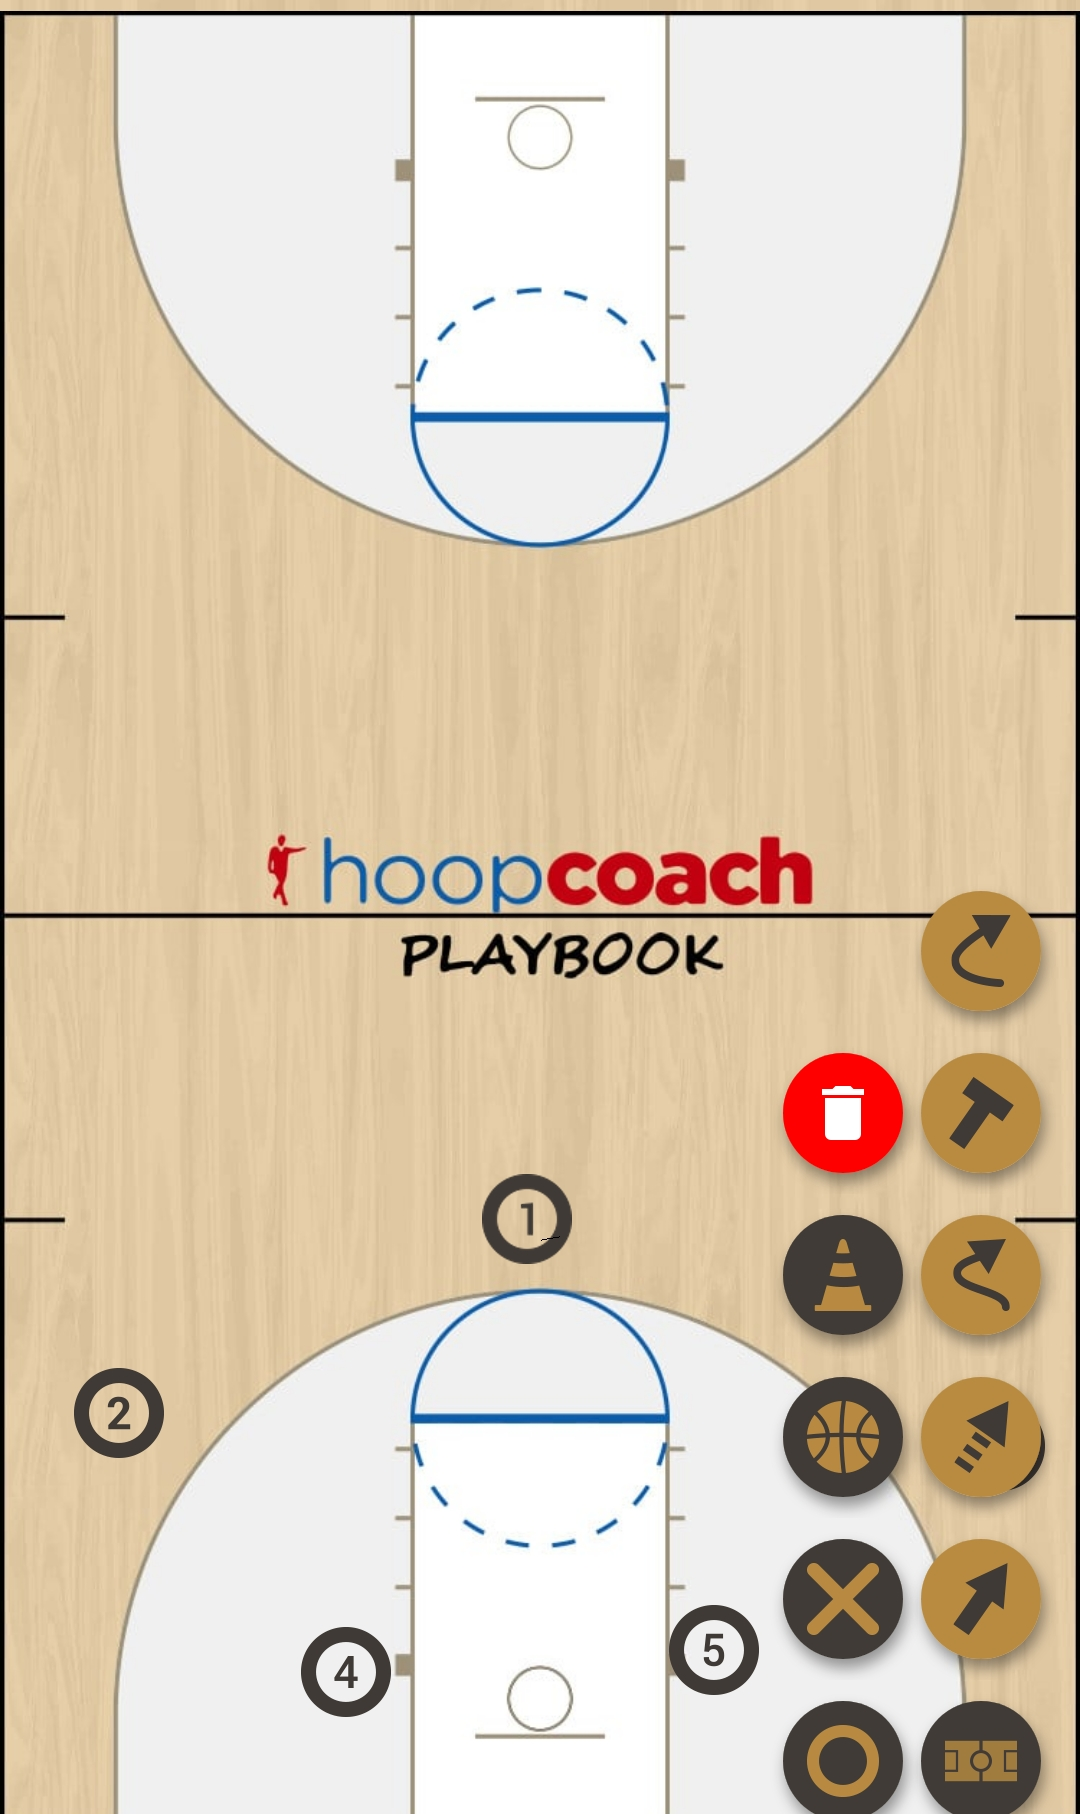 Basketball Play yote base Man to Man Set